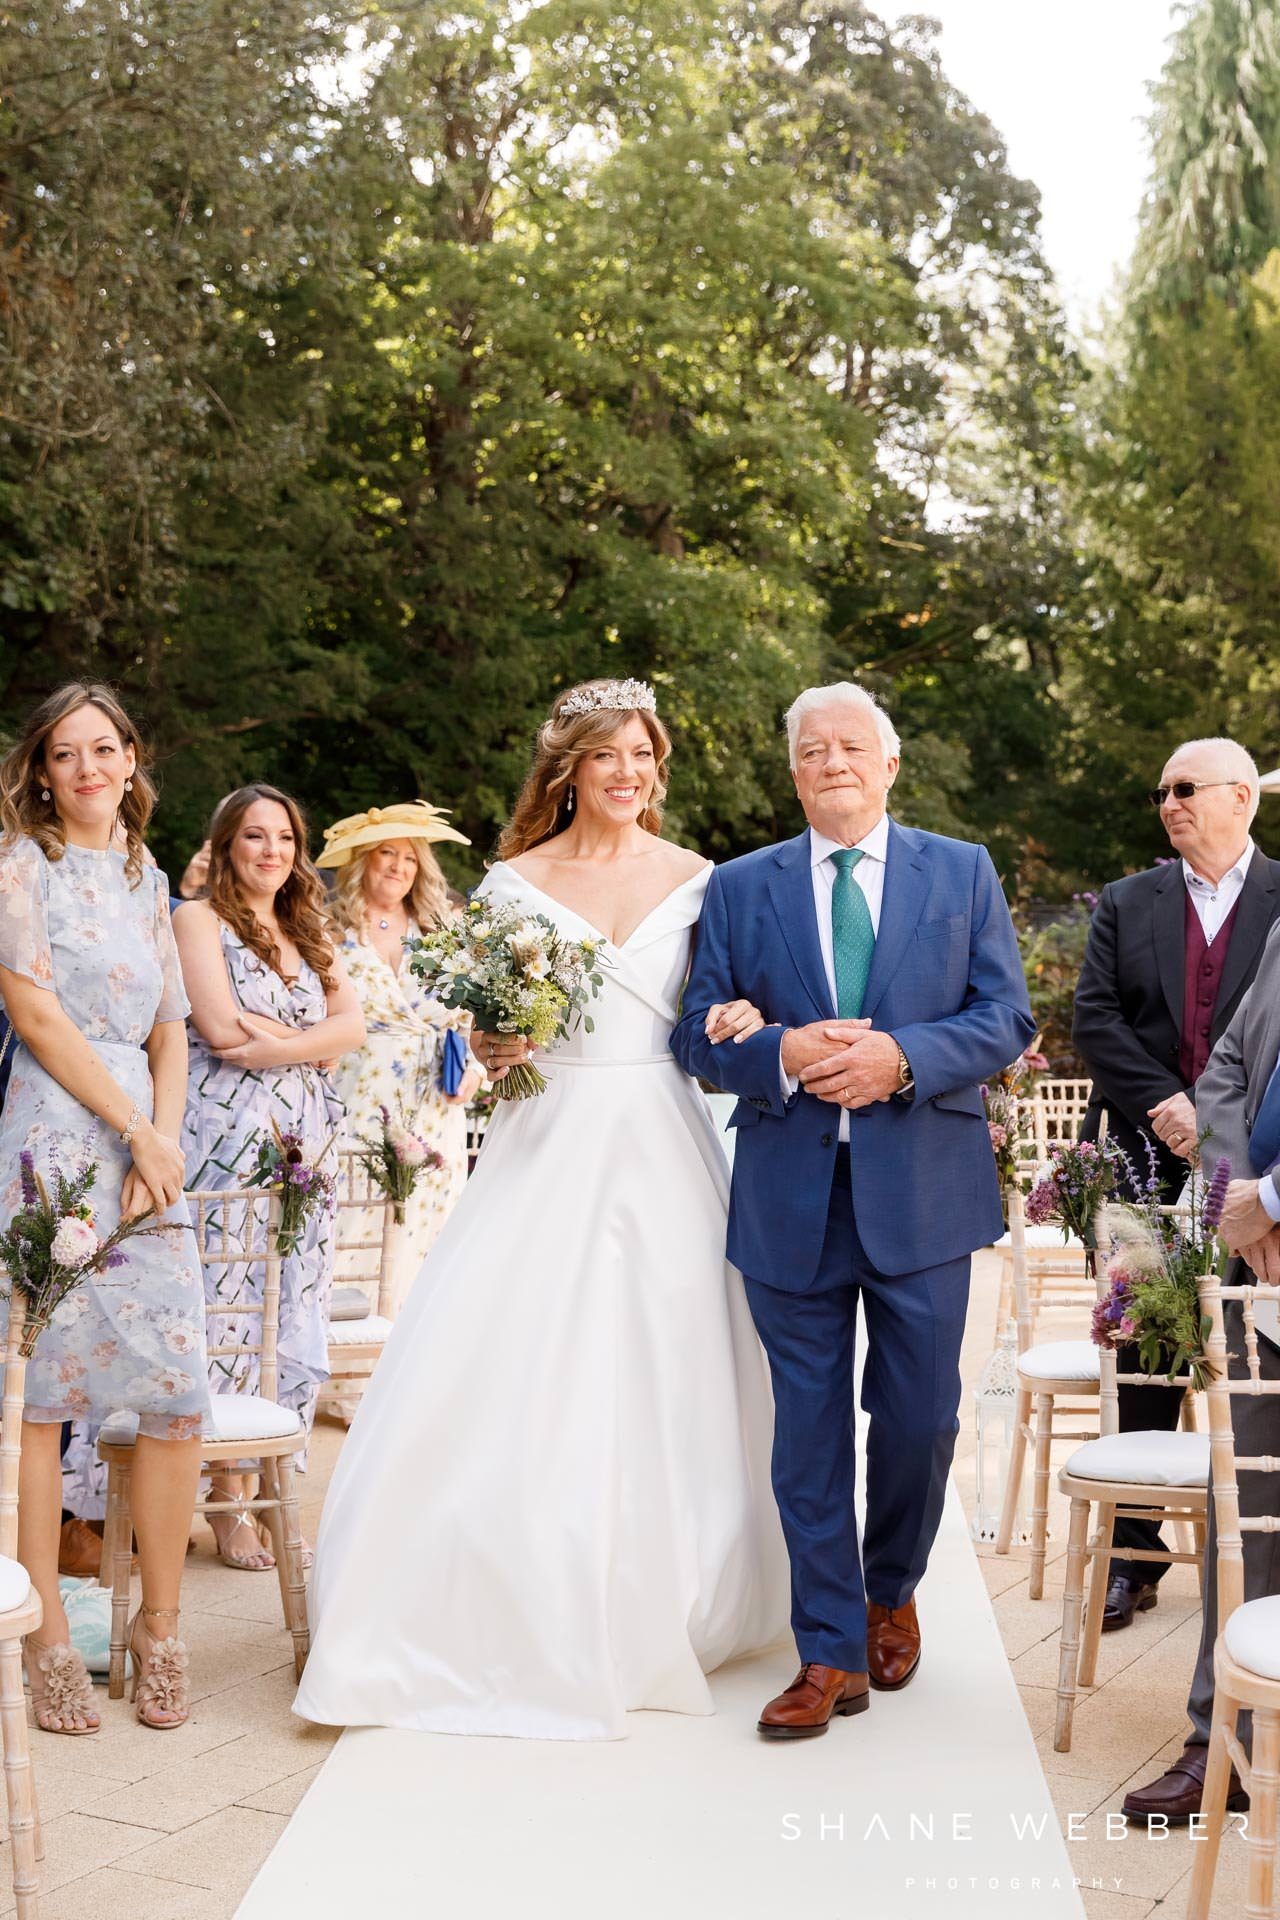 Outdoor wedding ceremony at Grantley Hall